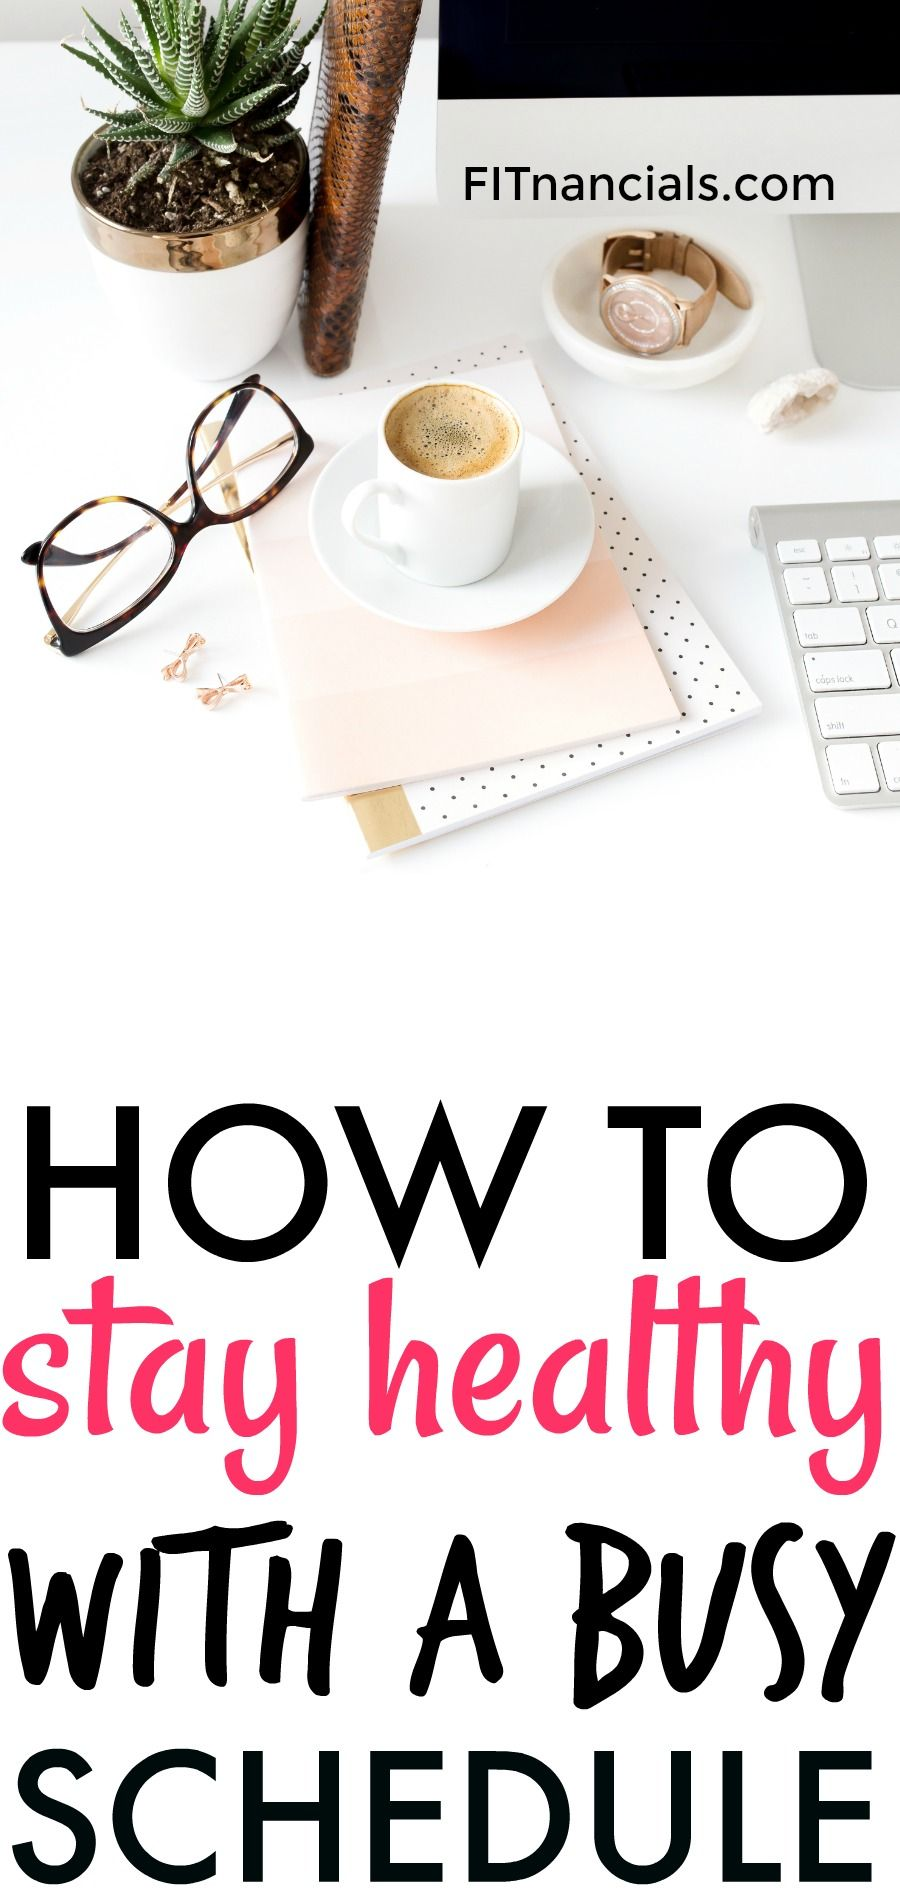 How to Stay Healthy with a Busy Schedule How to Stay Healthy with a Busy Schedule new picture